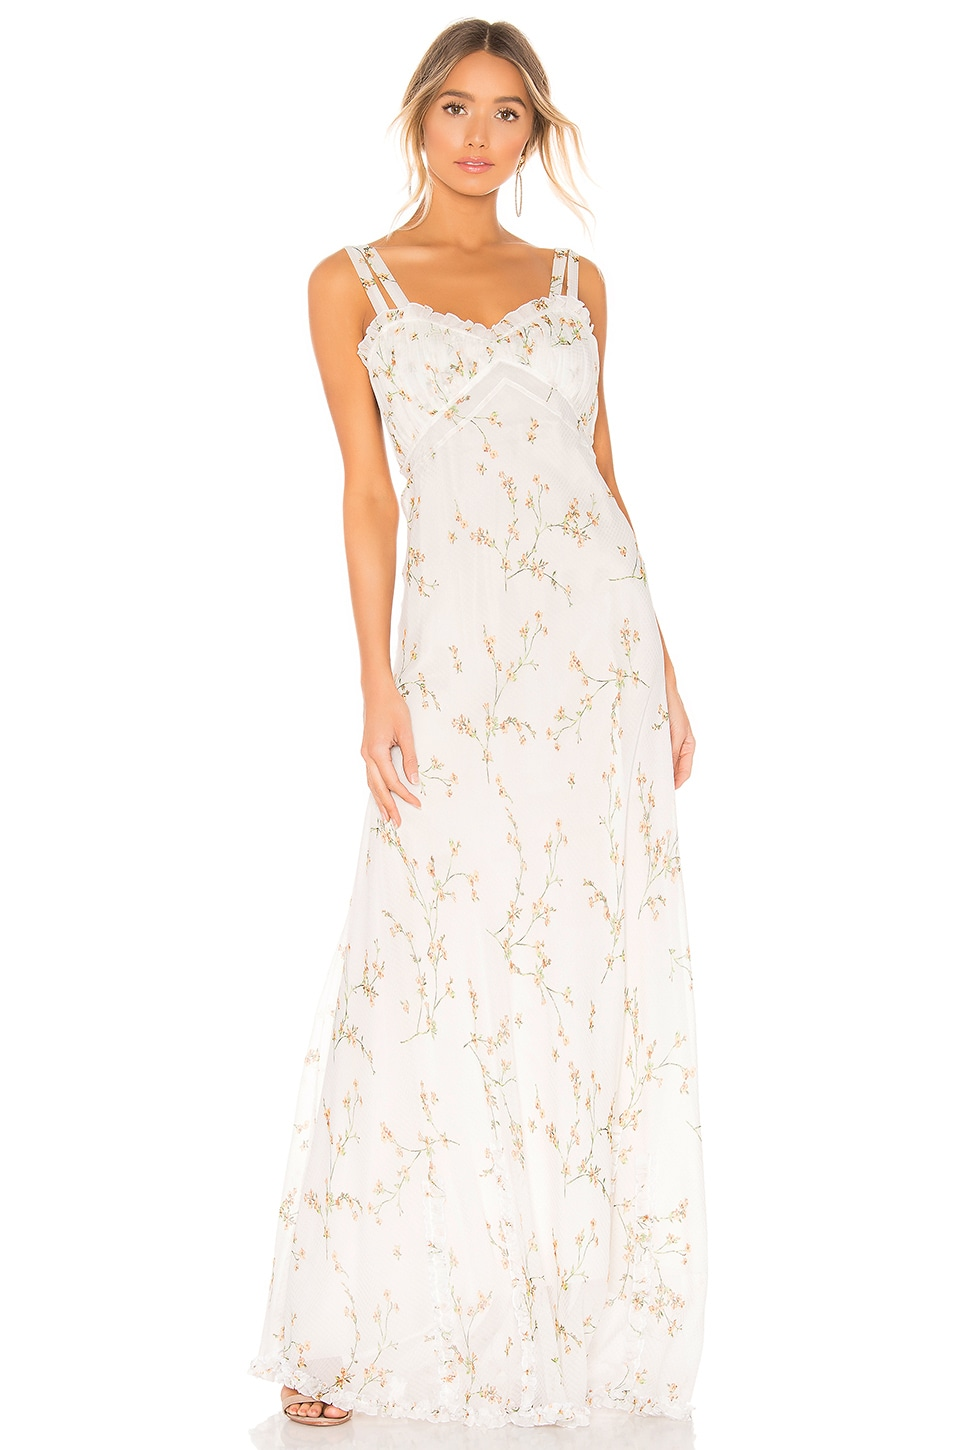 Divine Heritage Velvet Trim Maxi Dress in White Light